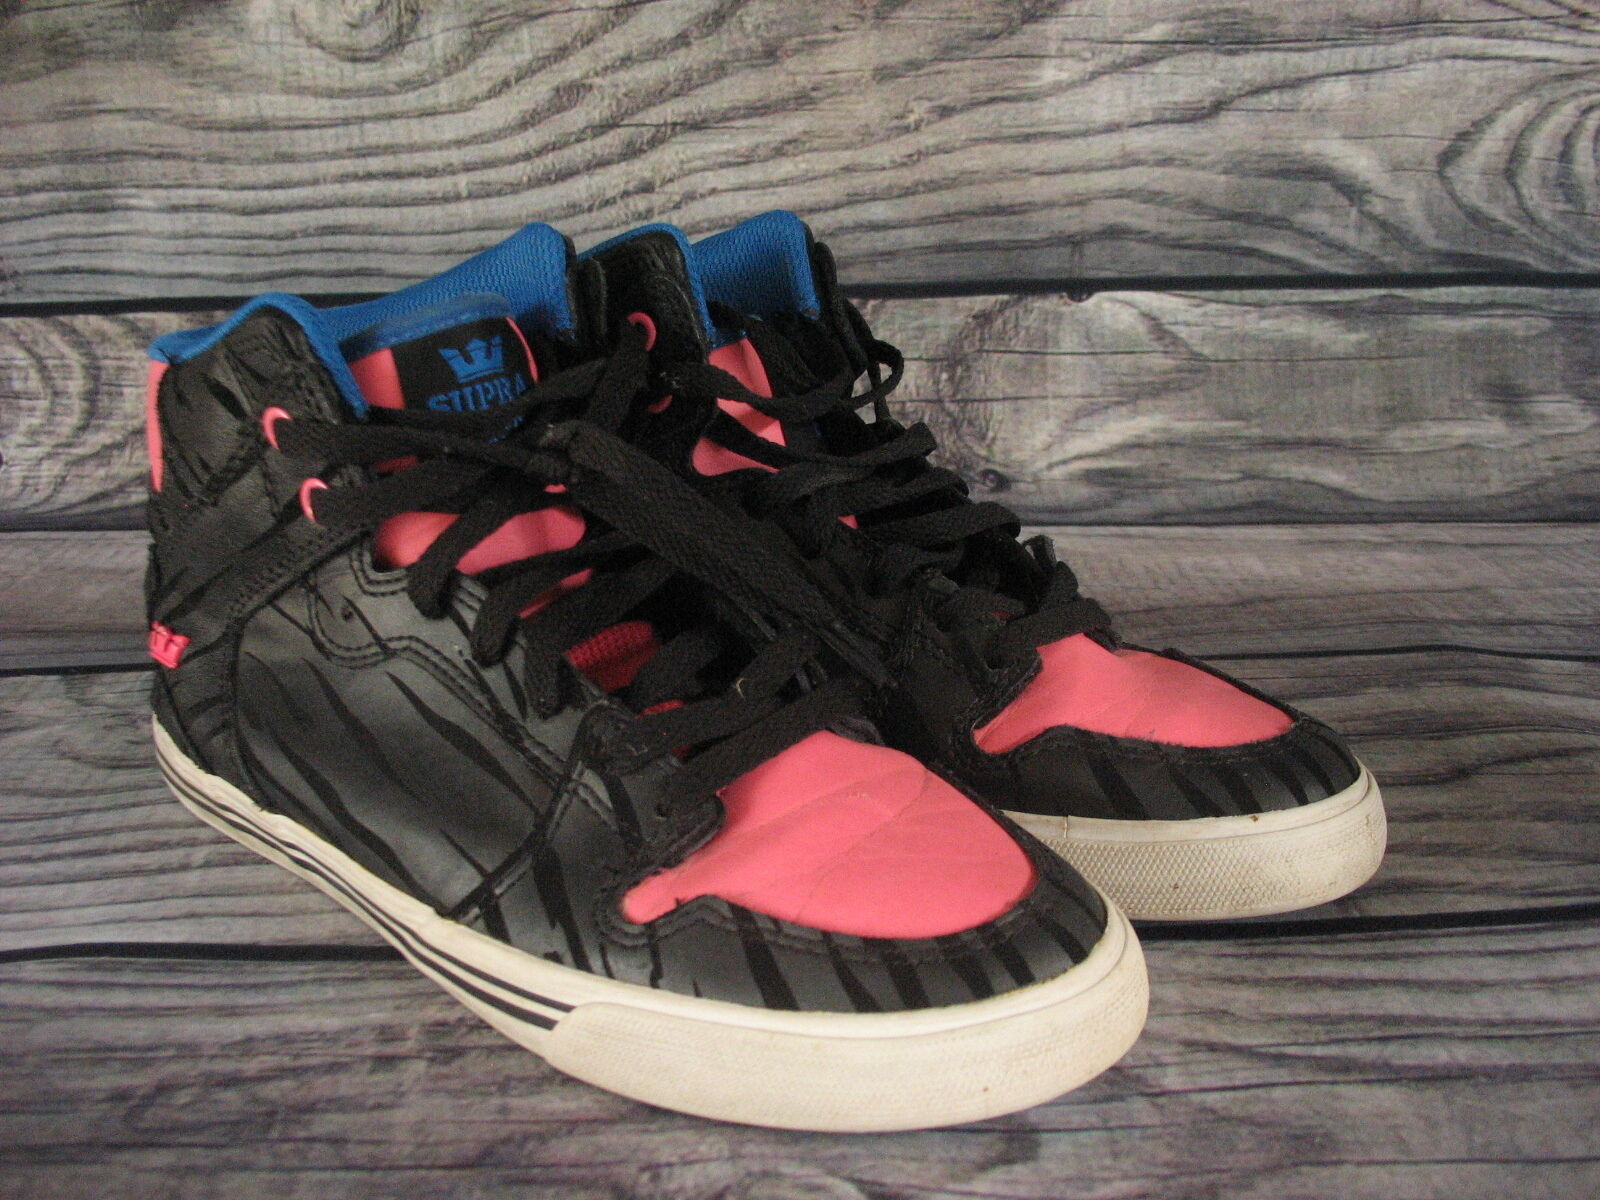 Primary image for Supra High Top Pink Blue Black Striped Shoes Size Womens 10 Used